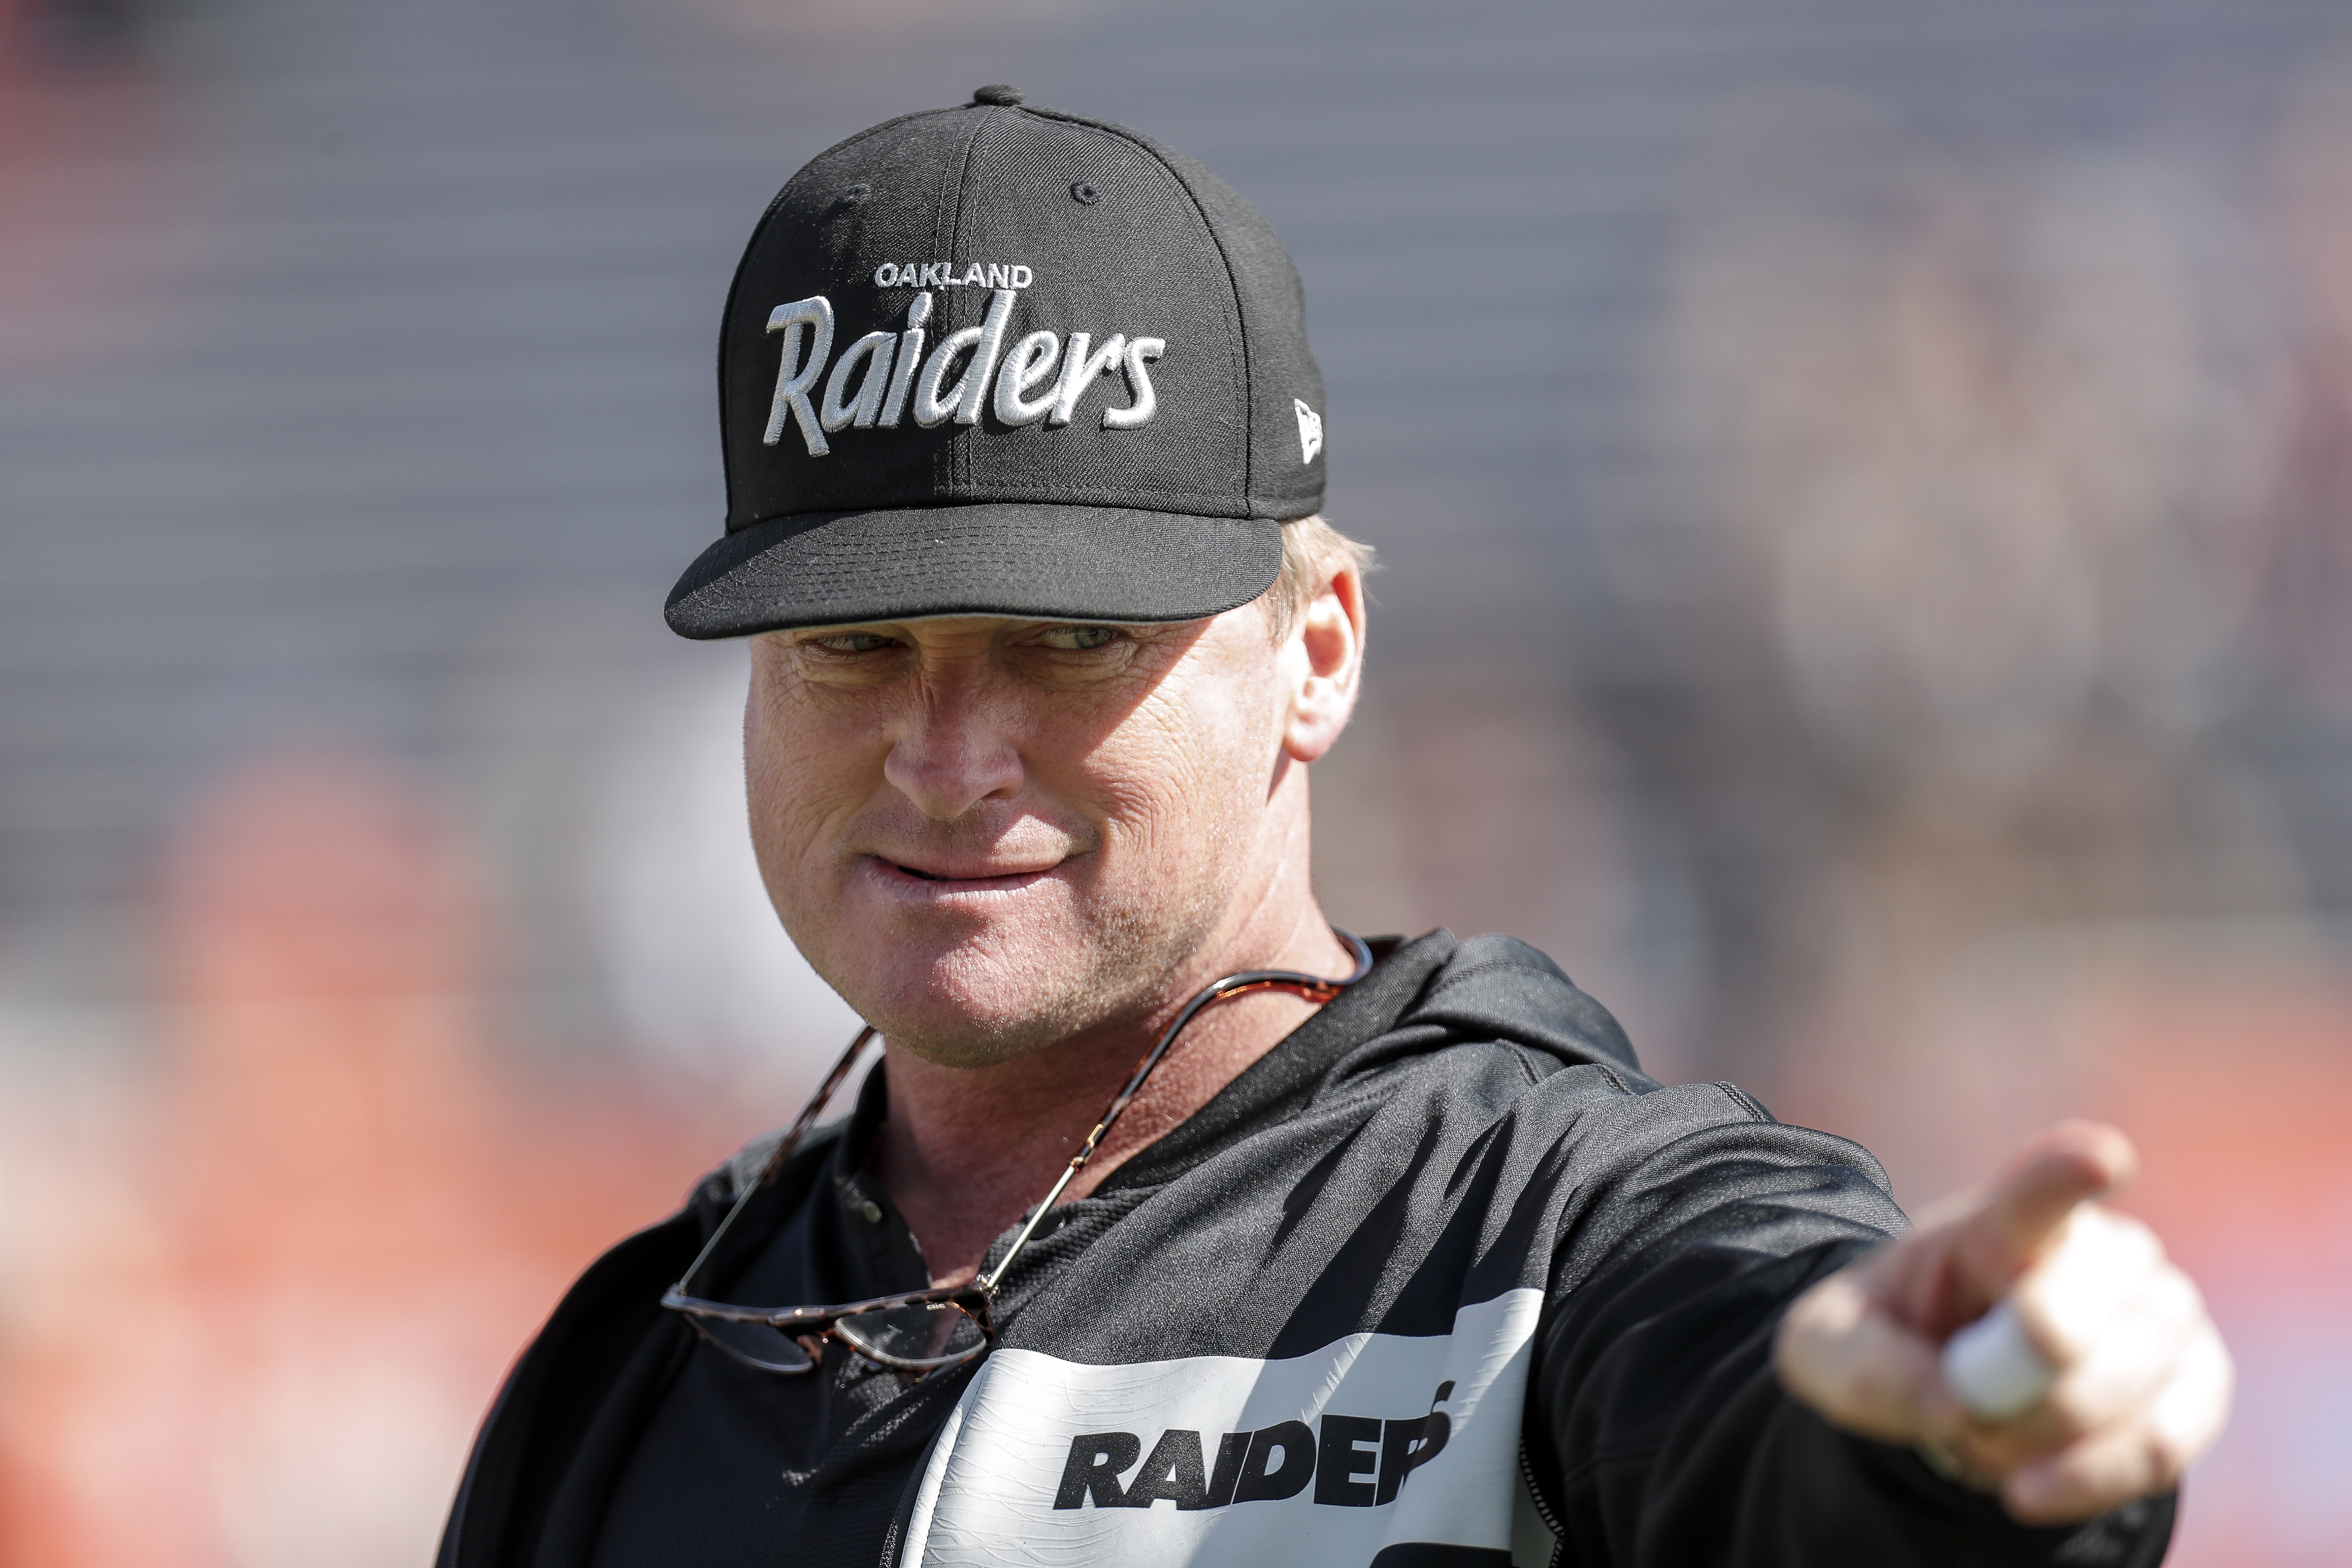 The Best Potential Moments From the Raiders on 'Hard Knocks'